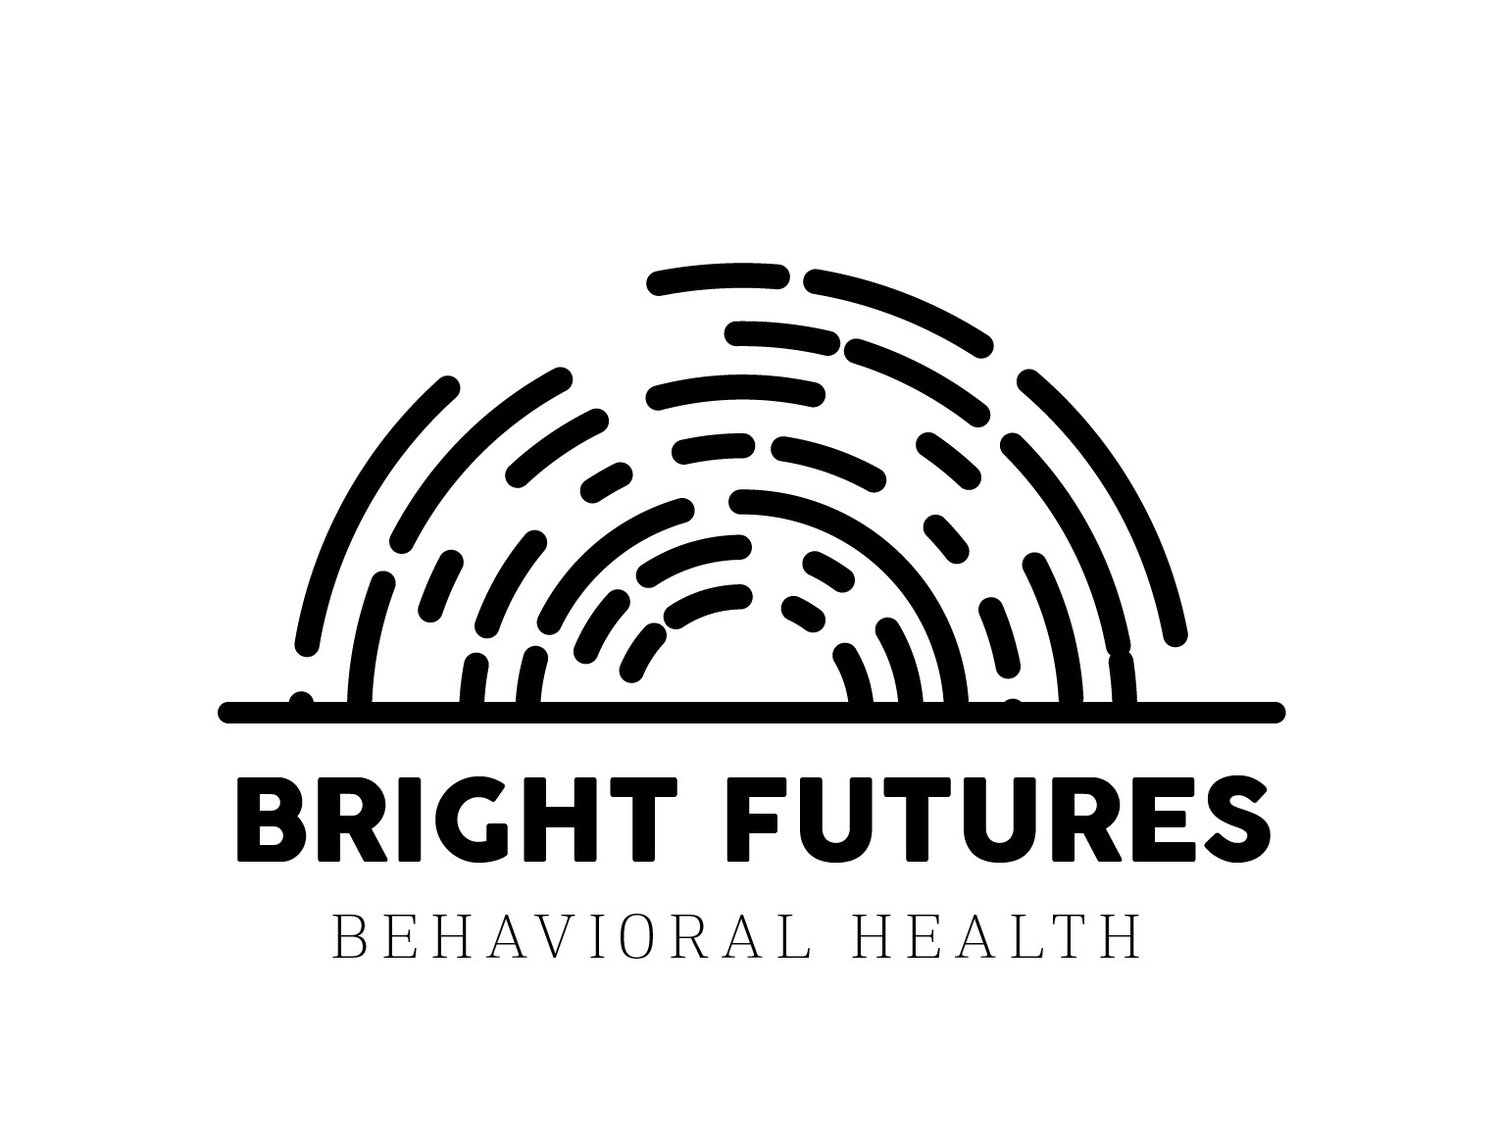 Bright Futures Behavioral Health